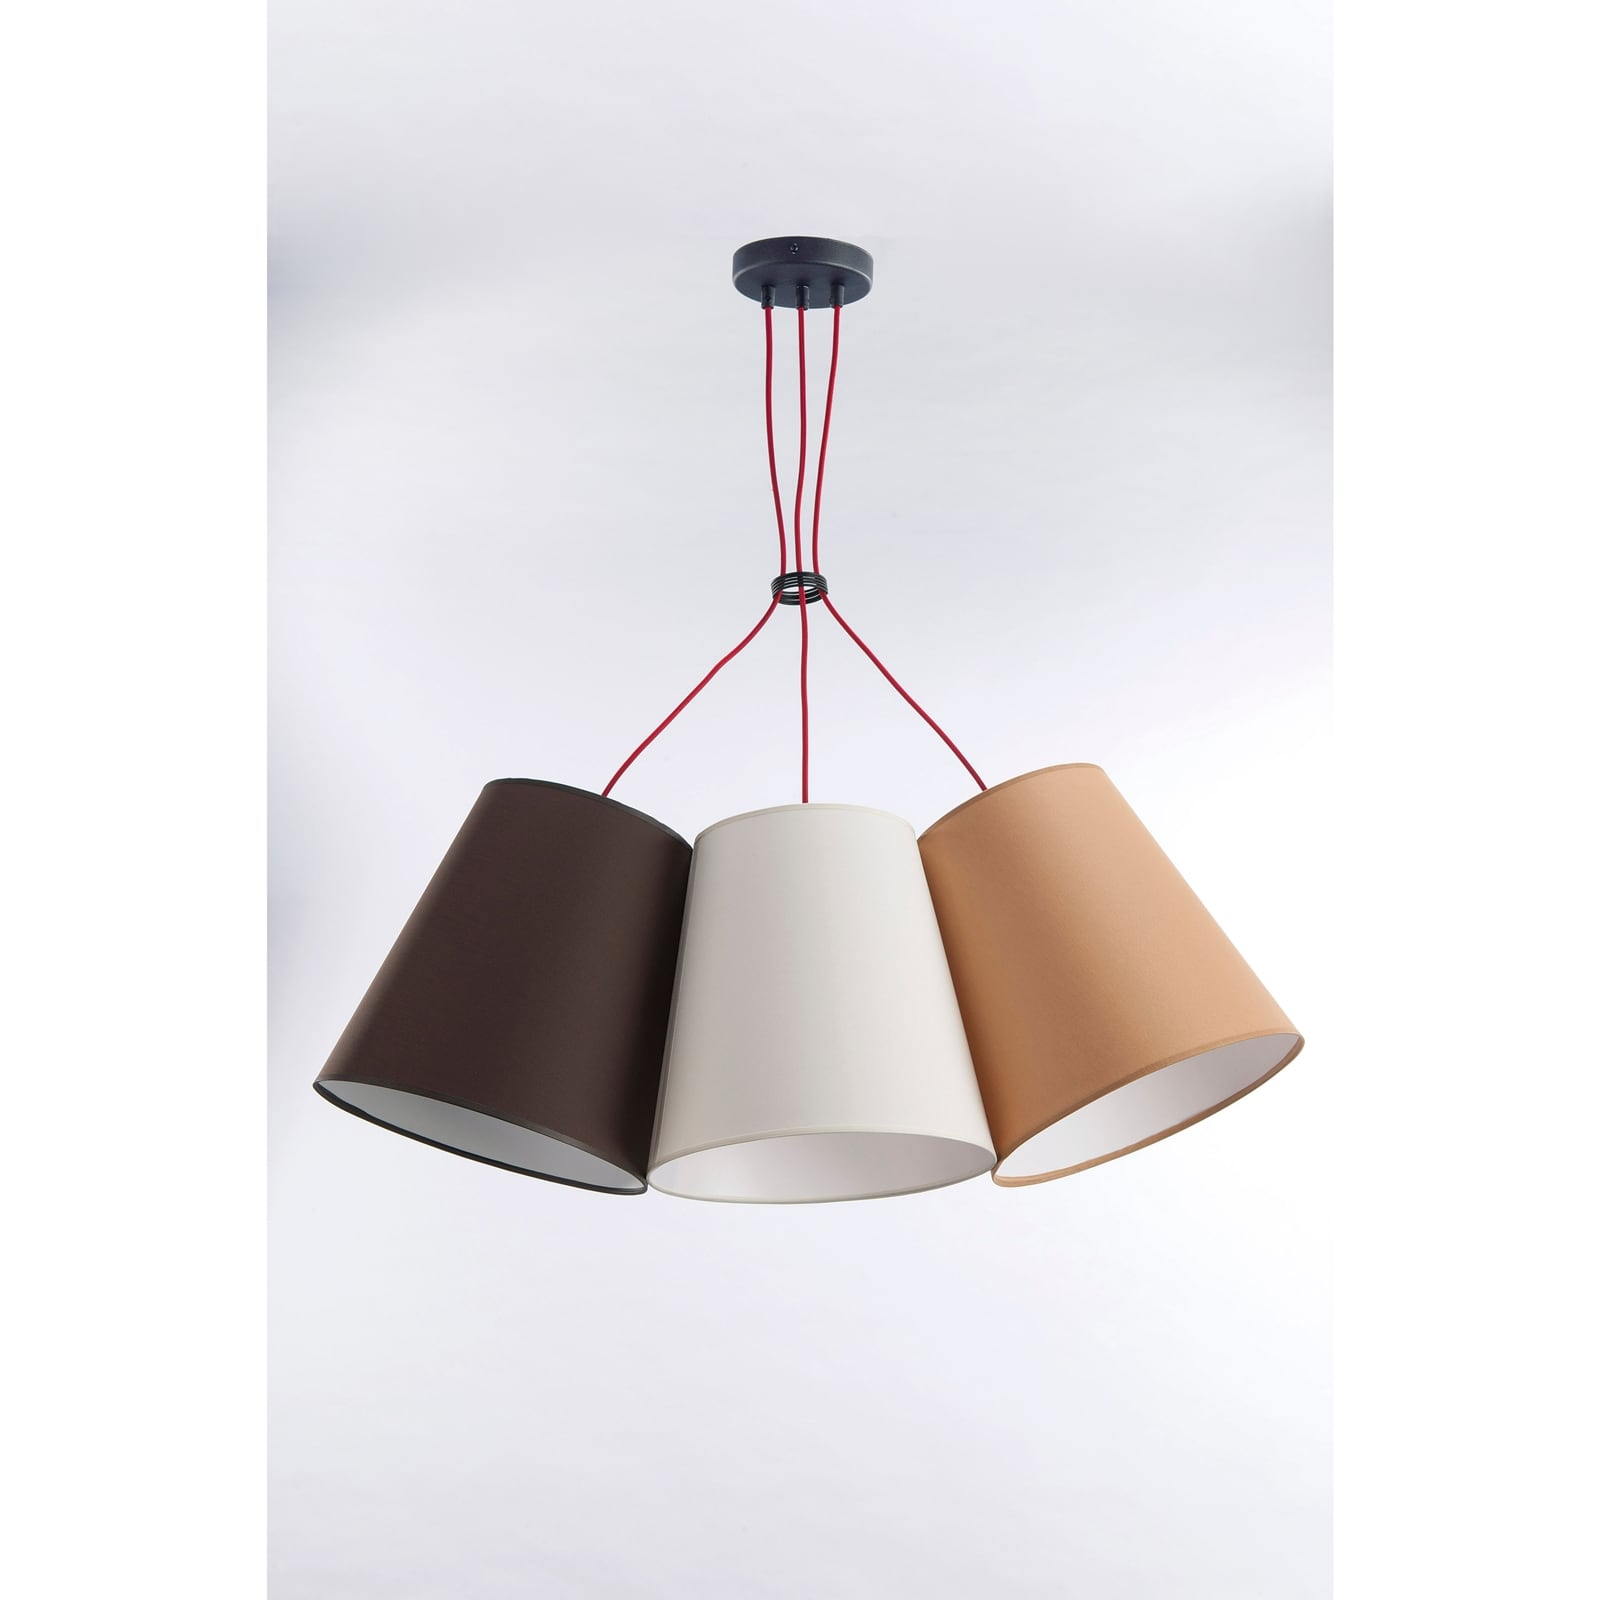 Hanging Lamp NECAR 3 No. 3217